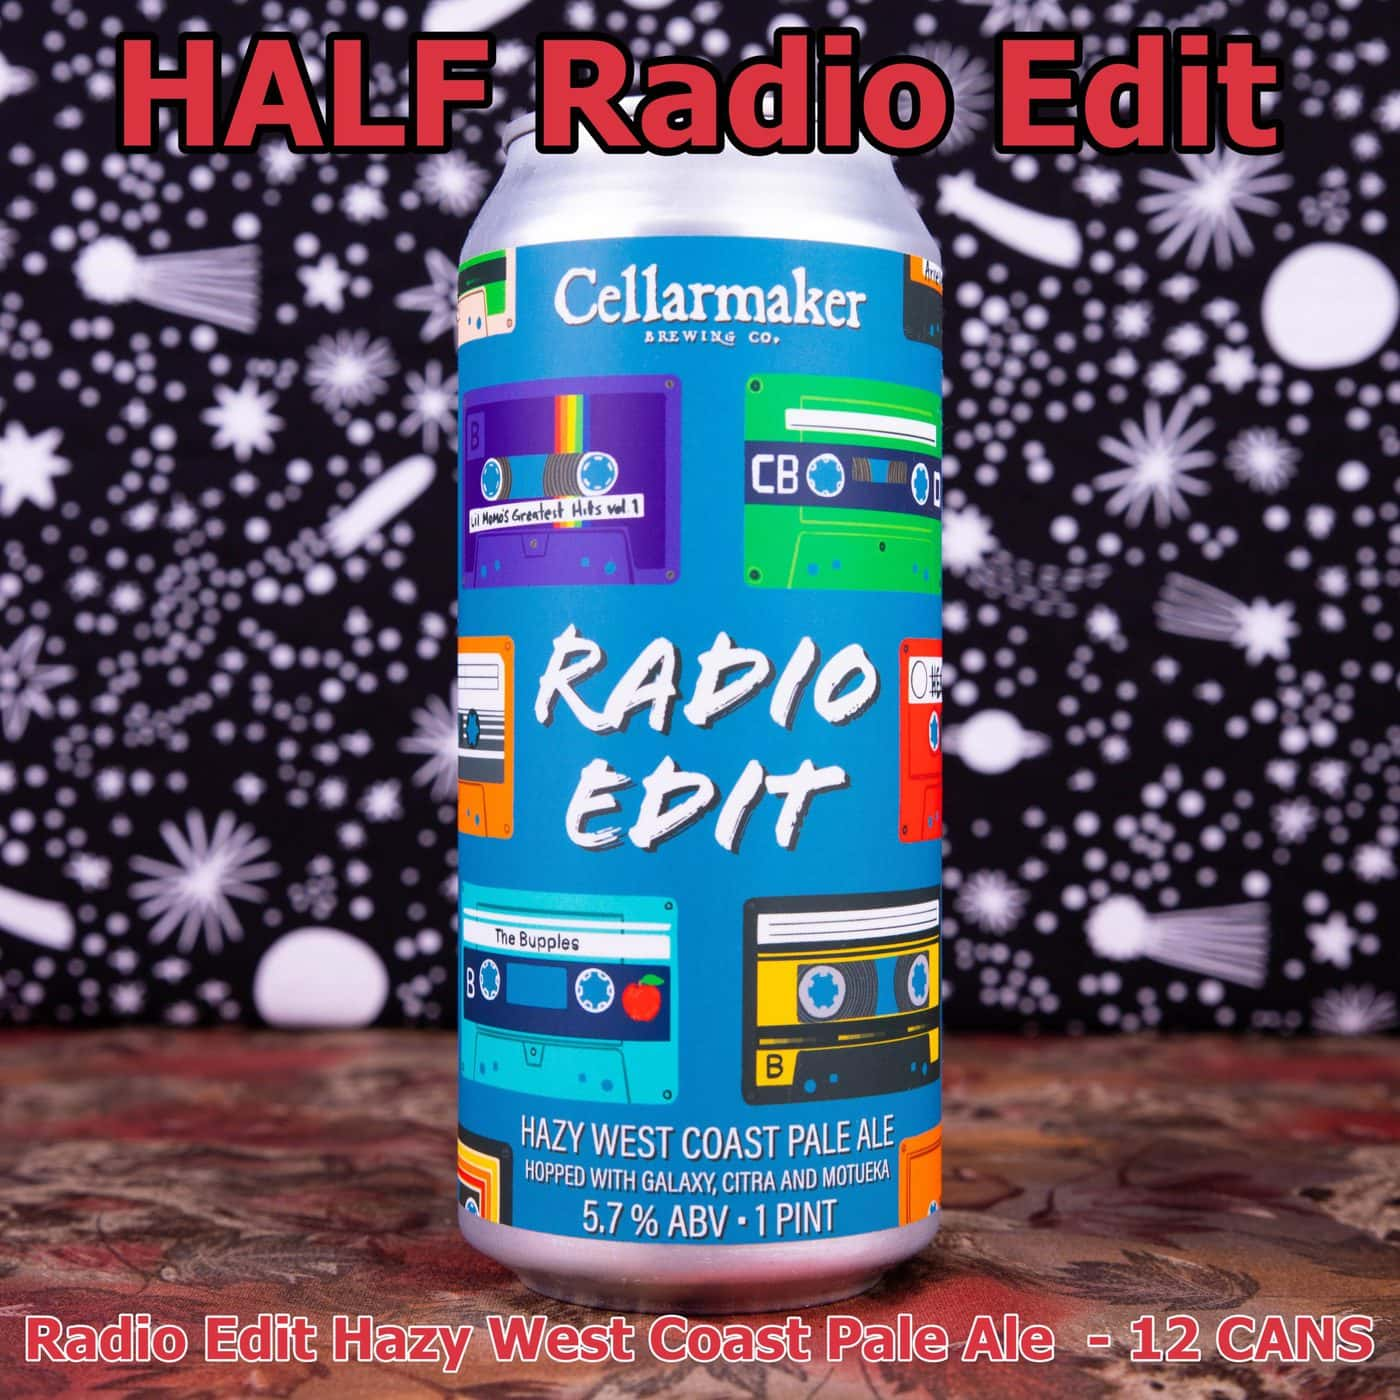 HALF CASE 12 CANS Radio Edit Pale Ale ~ Shipping Out For Next Day Delivery On Tuesday 1/19*